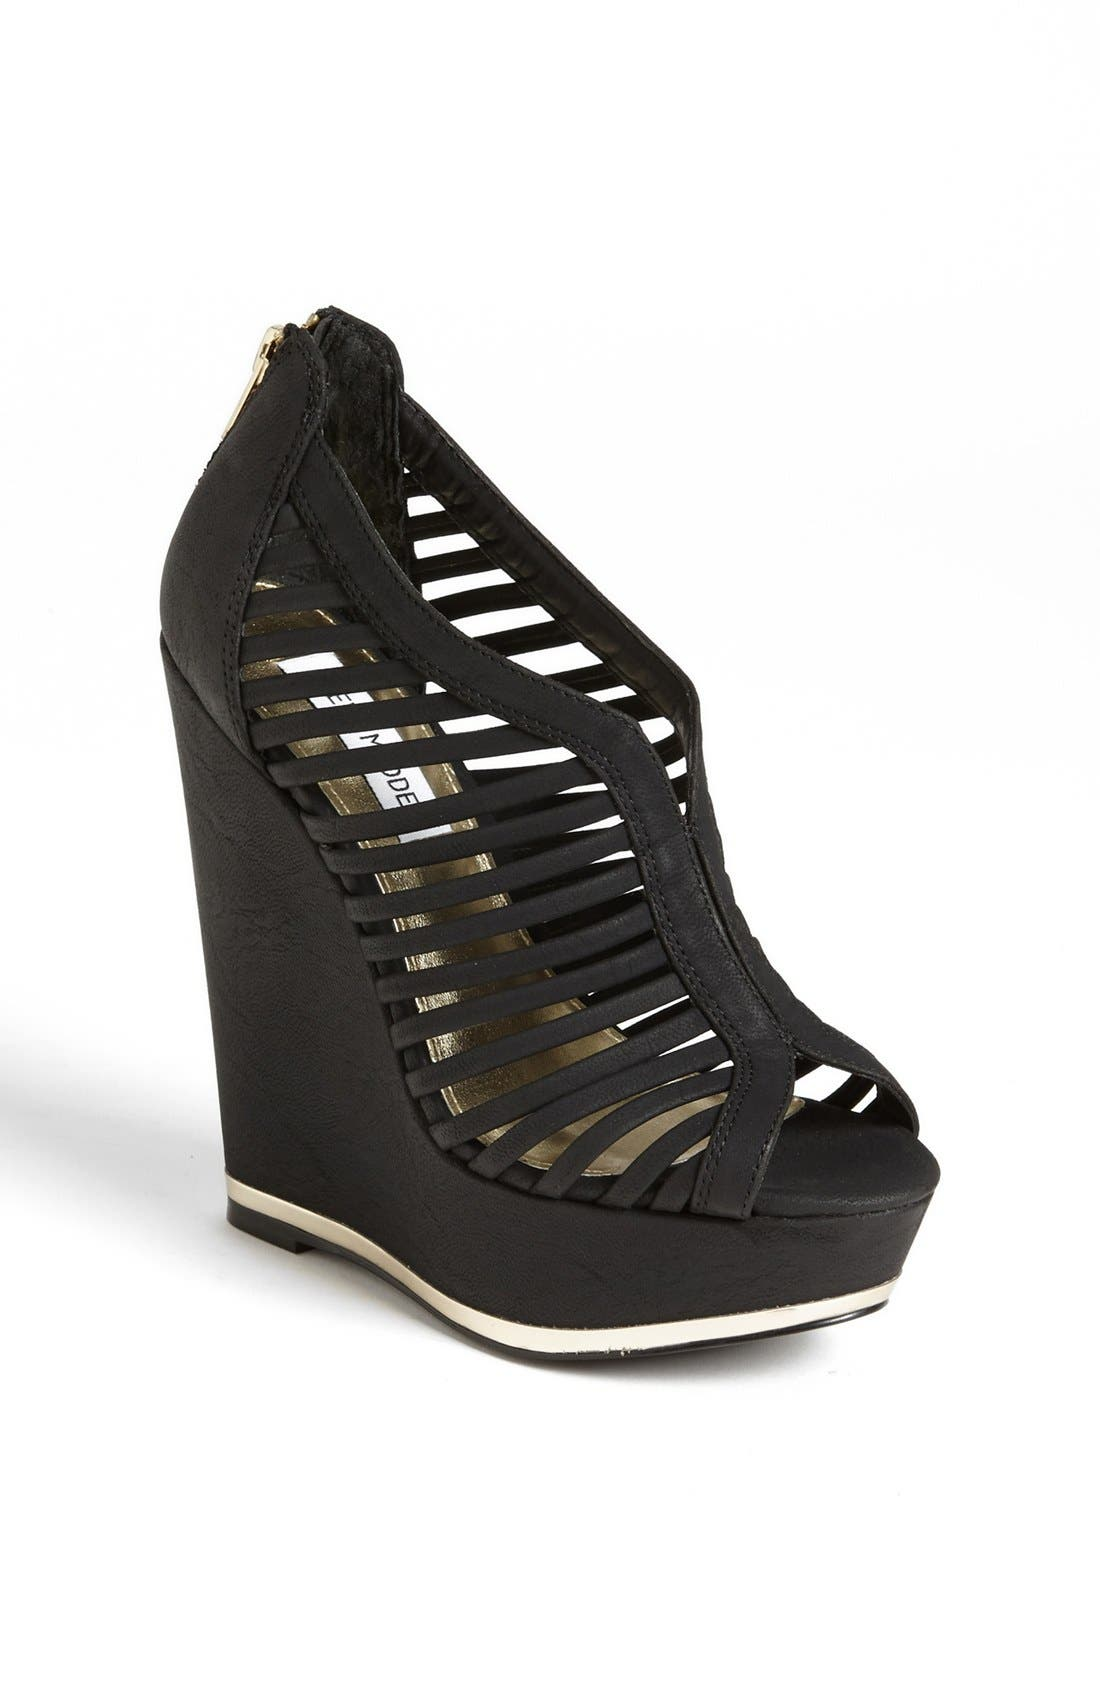 Main Image - Steve Madden 'Wresse' Wedge Bootie